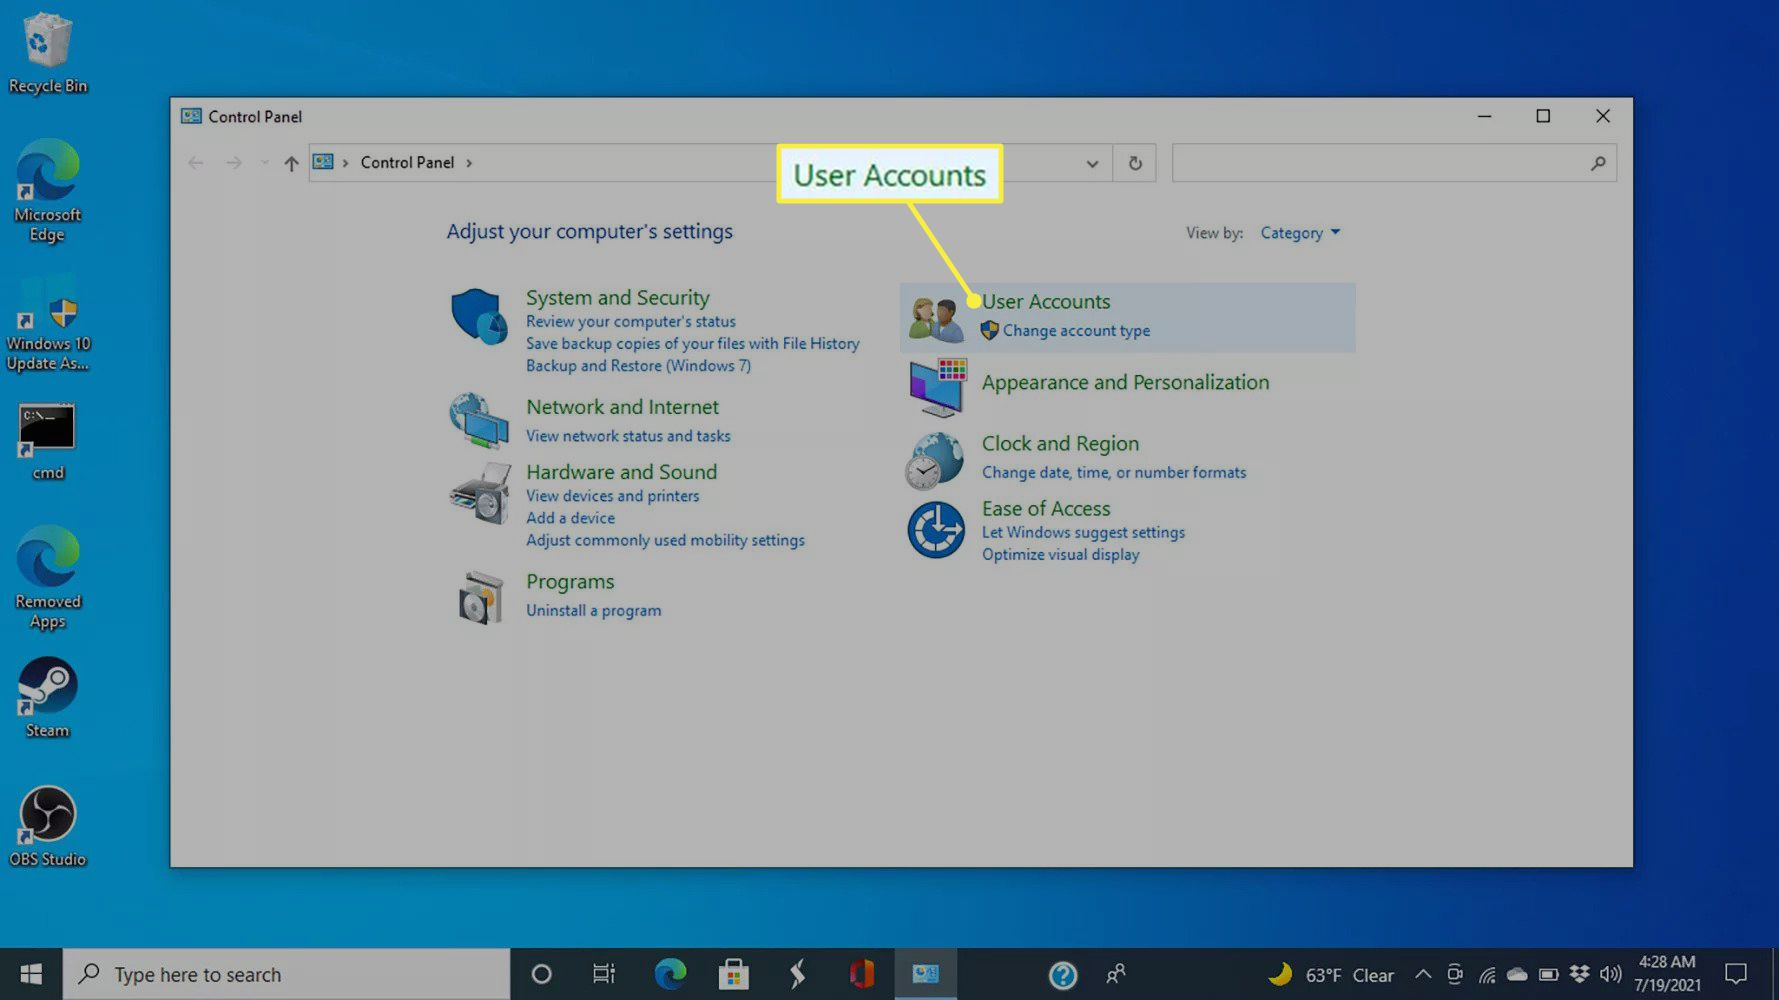 User Accounts in the Windows 10 Control Panel